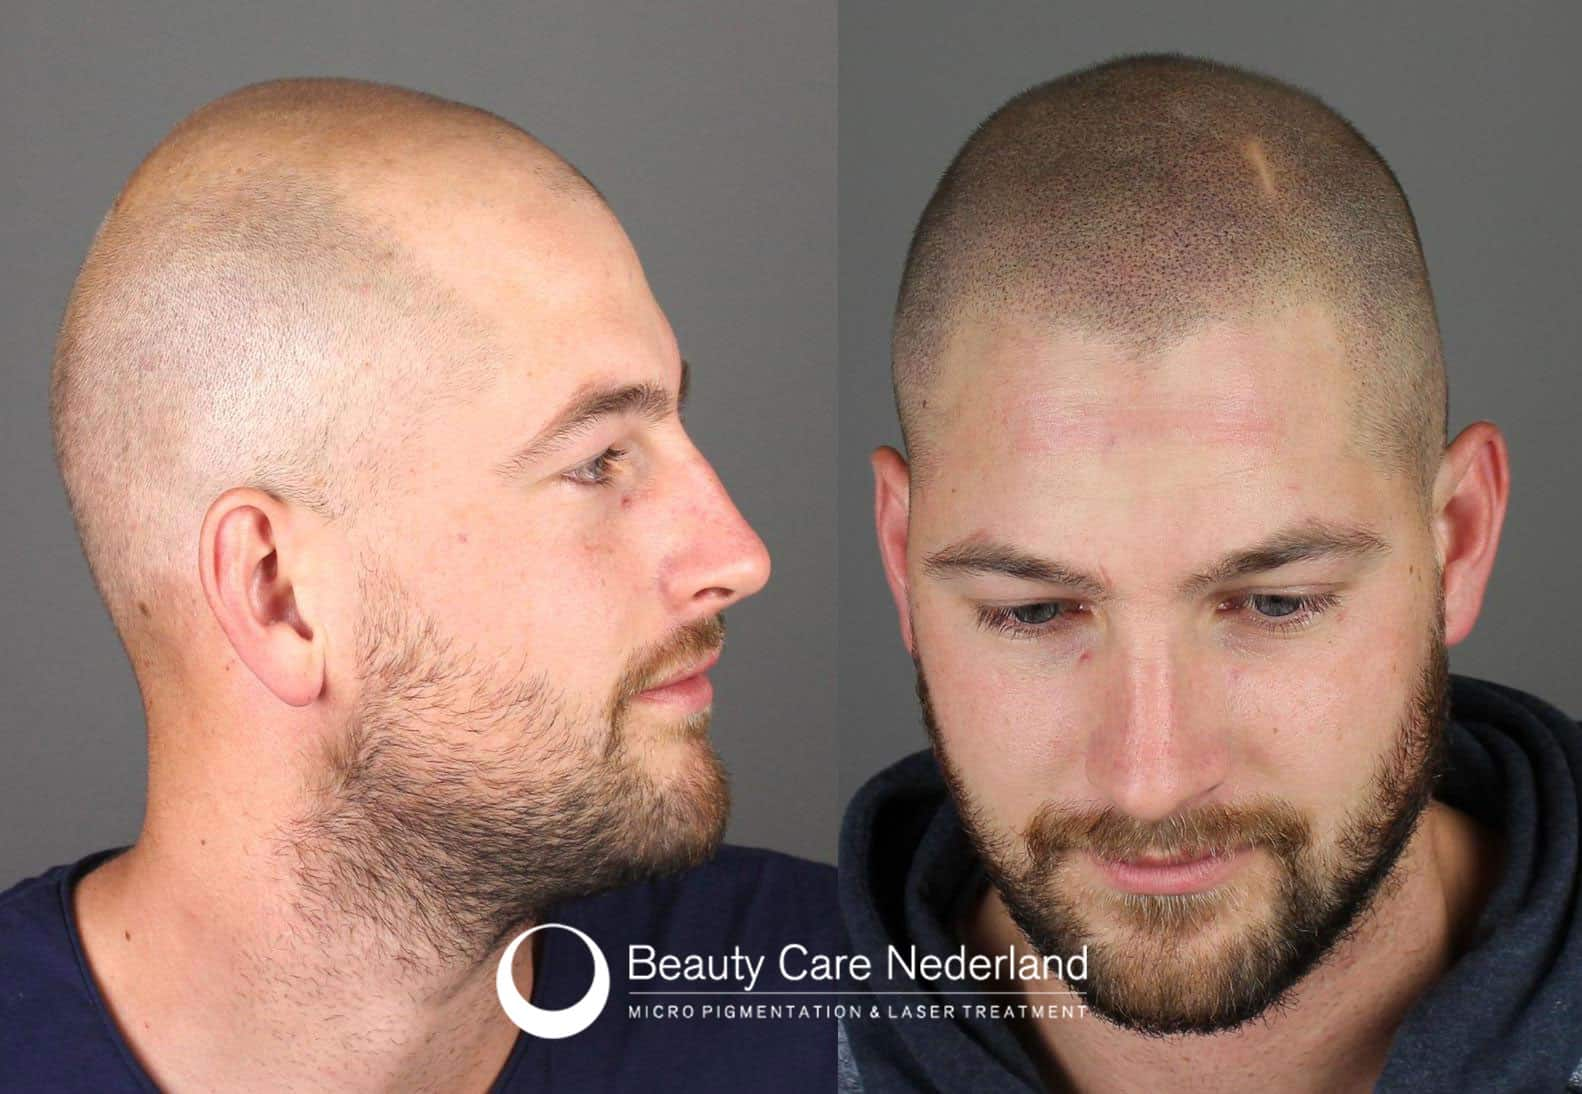 Beauty Care Nederland client before and after scalp micropigmentation